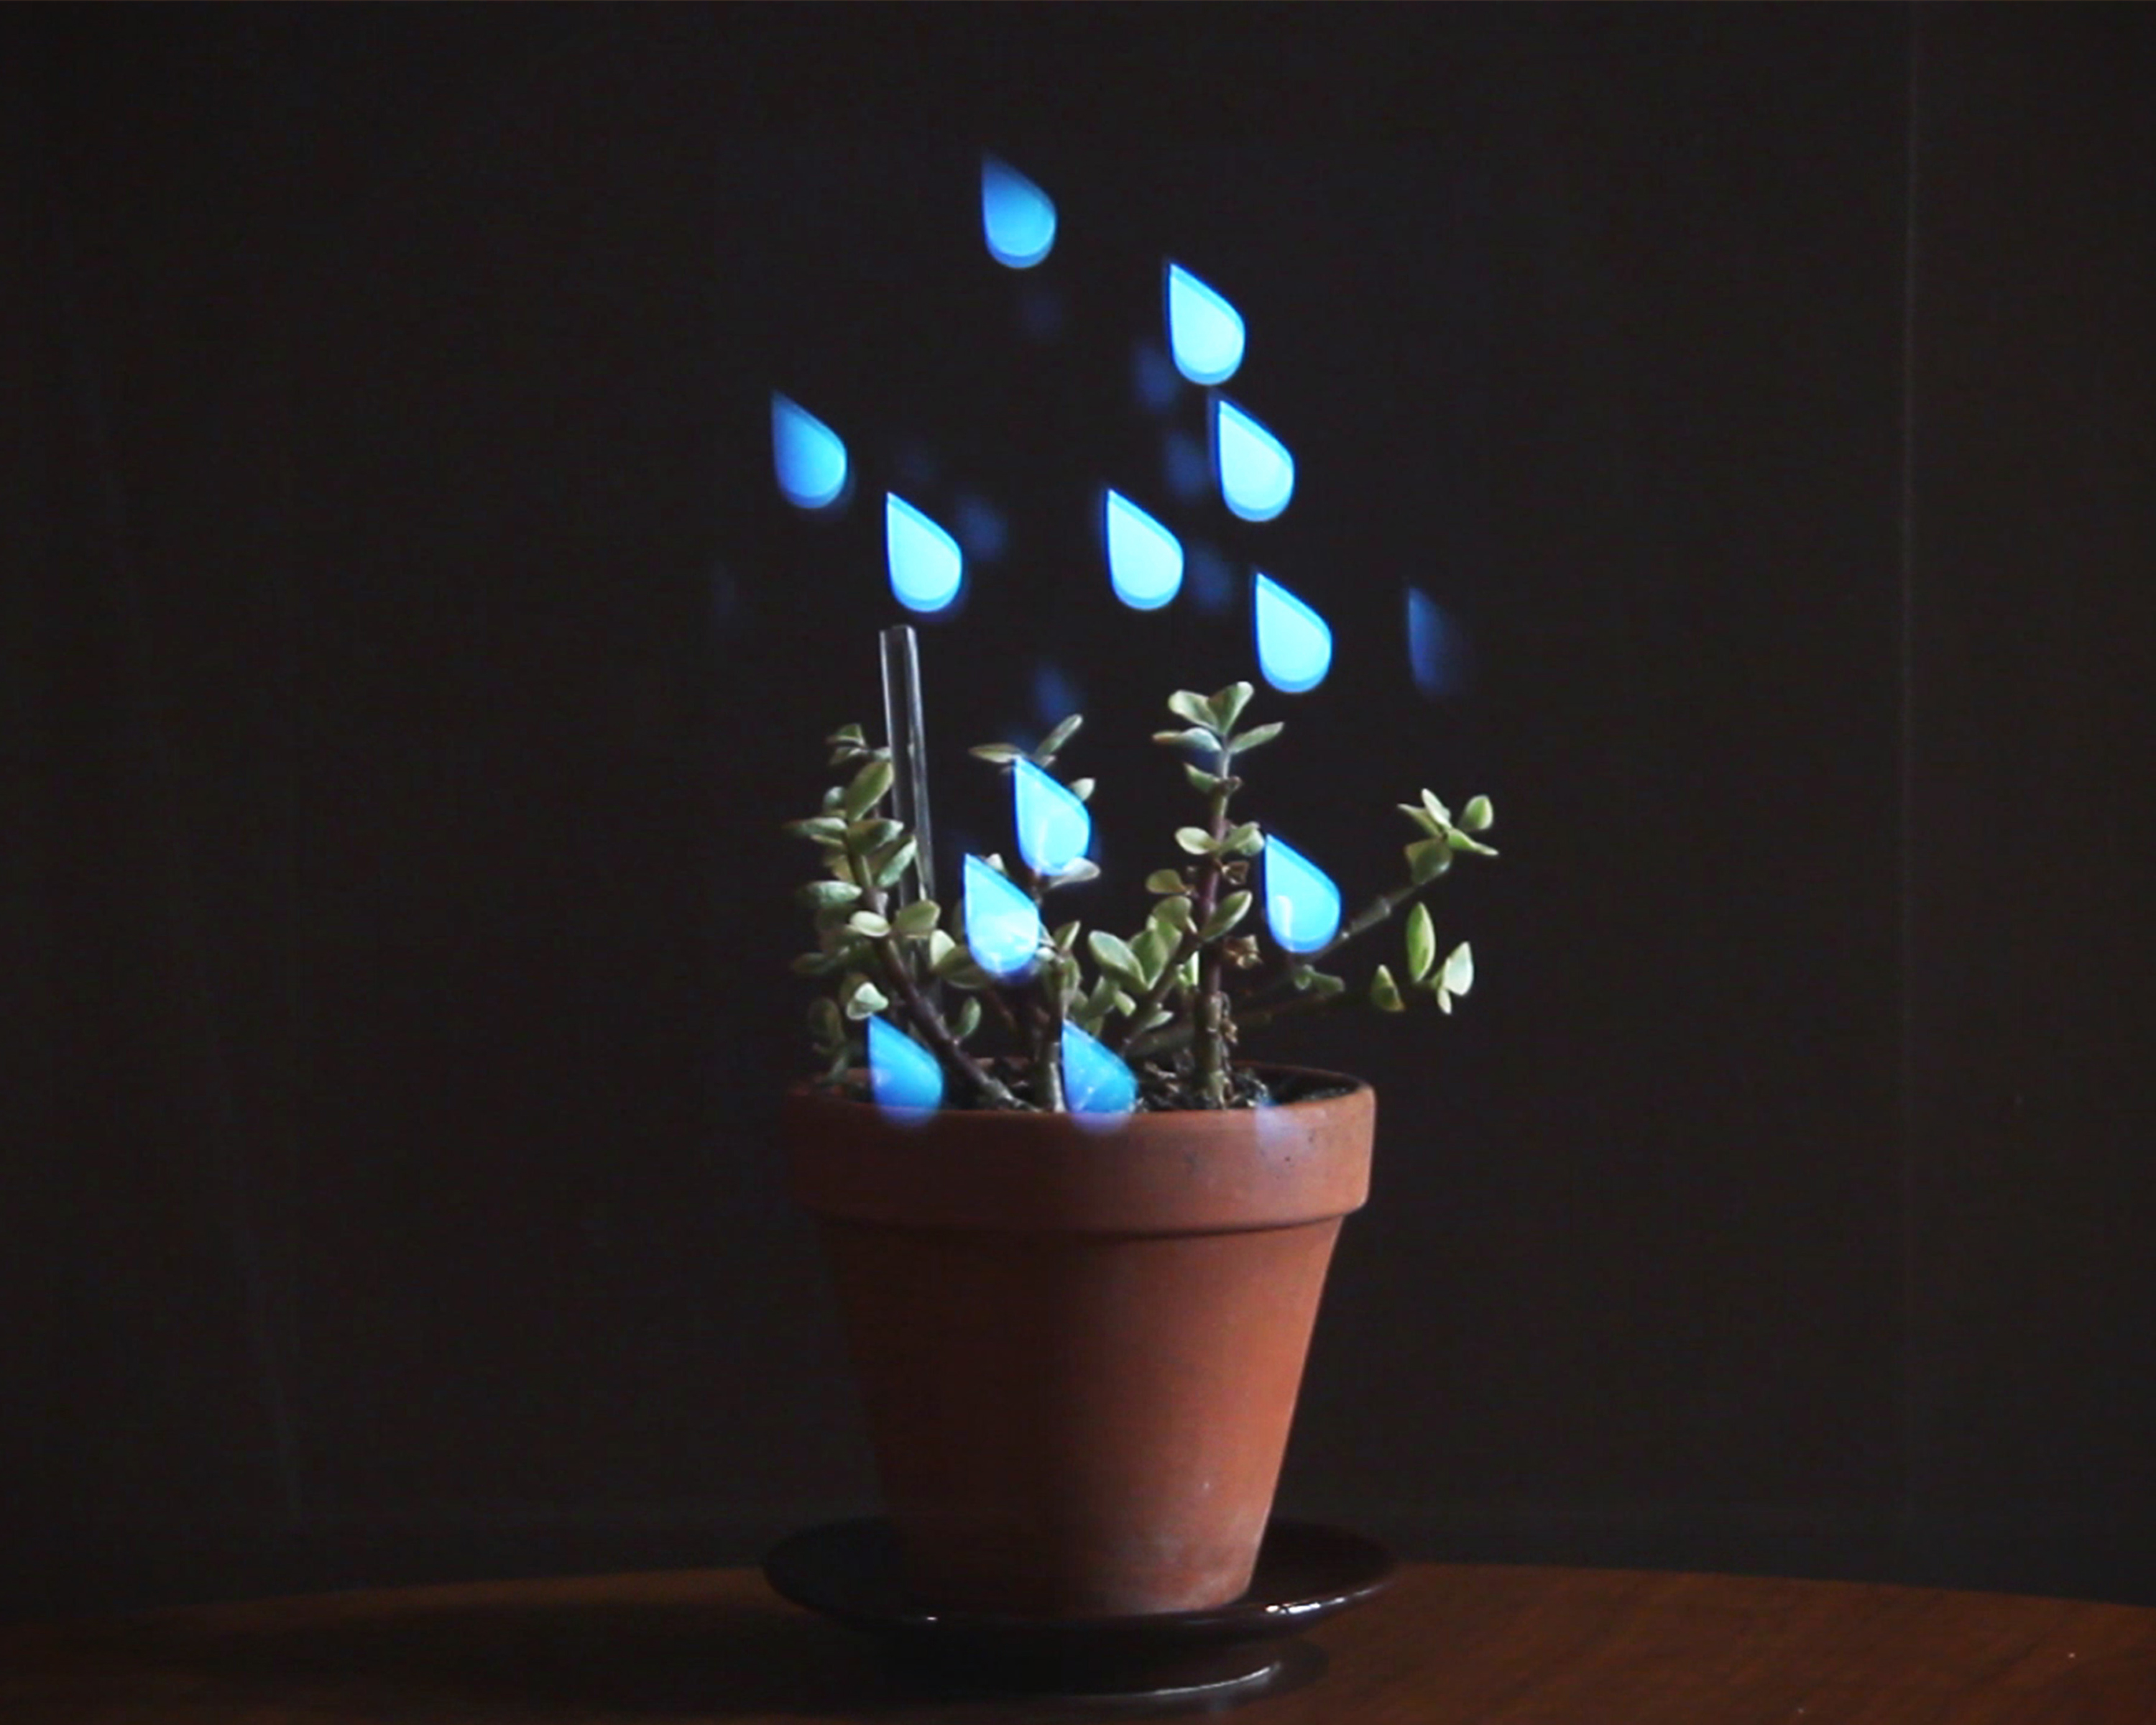 Leafy_Using augmented reality to enhance human-plant interaction.